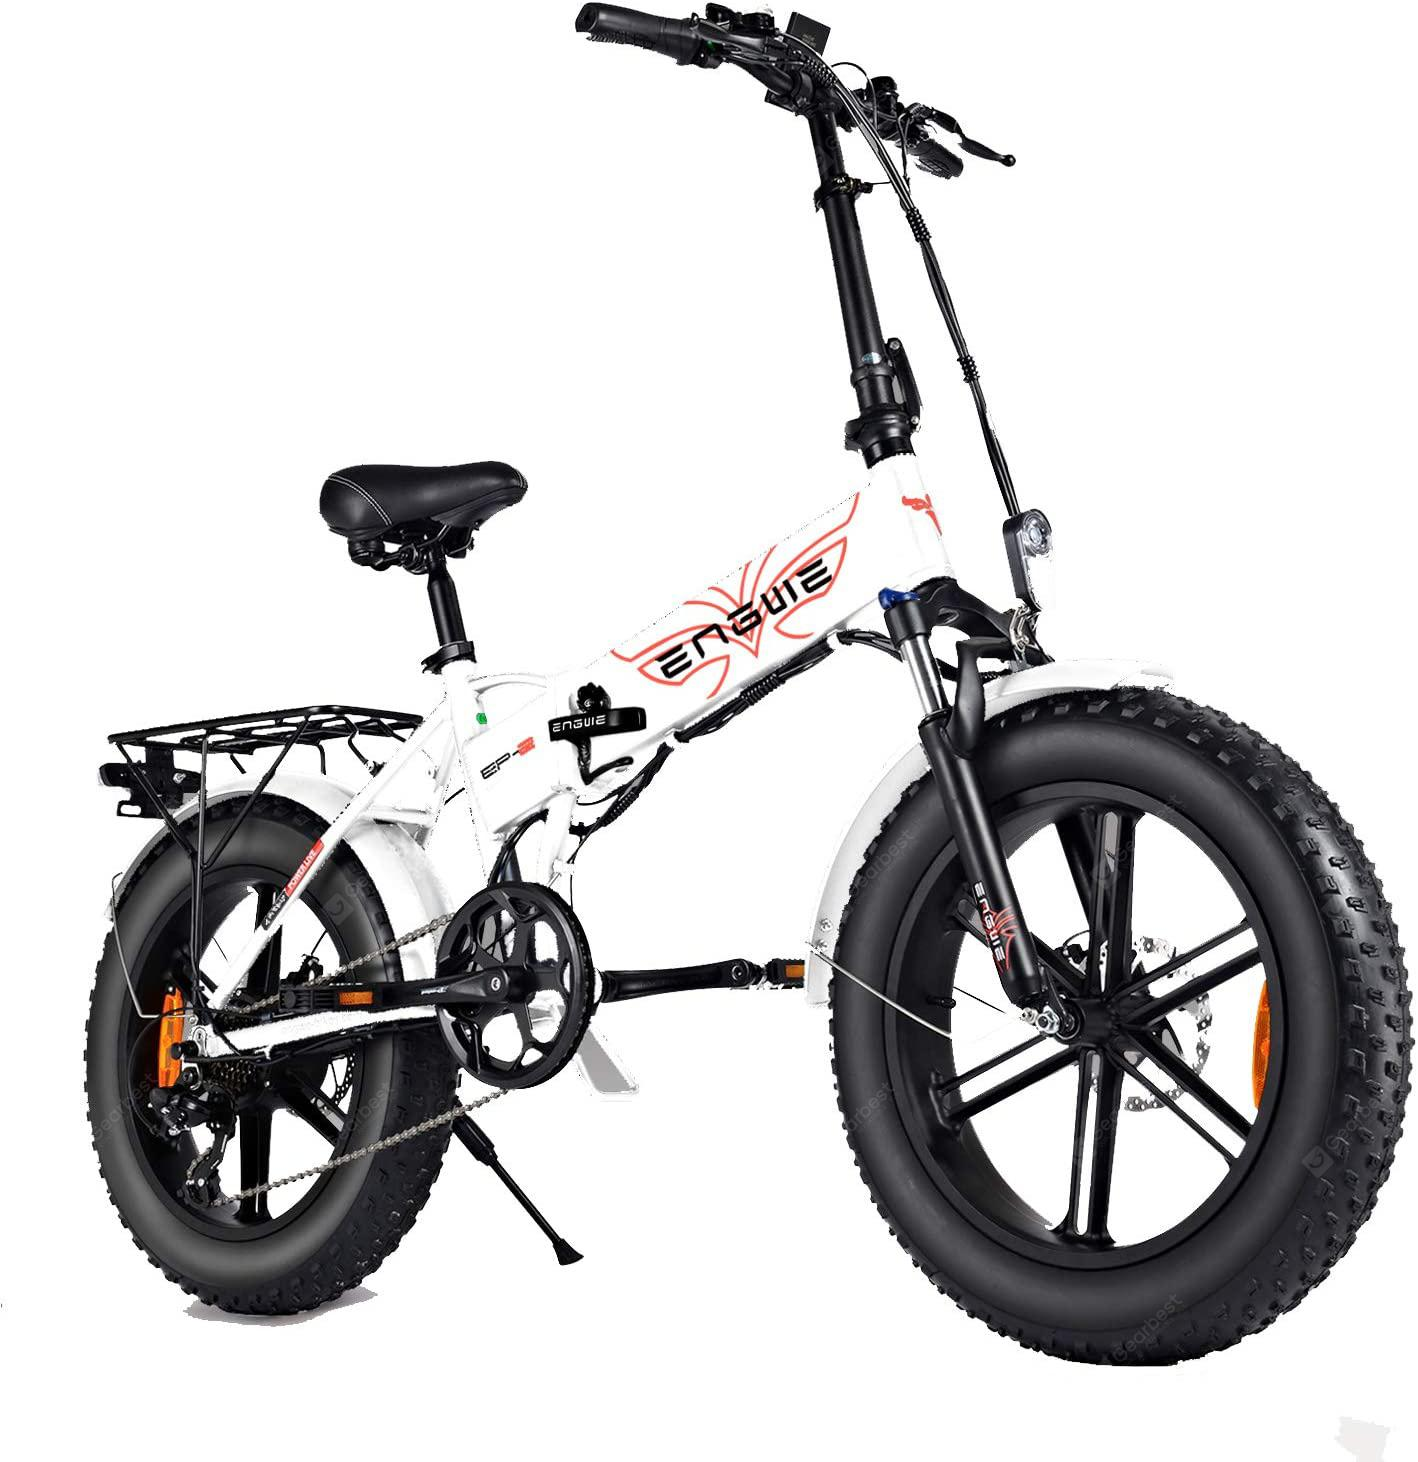 """ENGWE EP-2 PRO 750W Folding Fat Tire Electric Bike with 48V 12.8Ah Lithium-ion Battery"" 3"